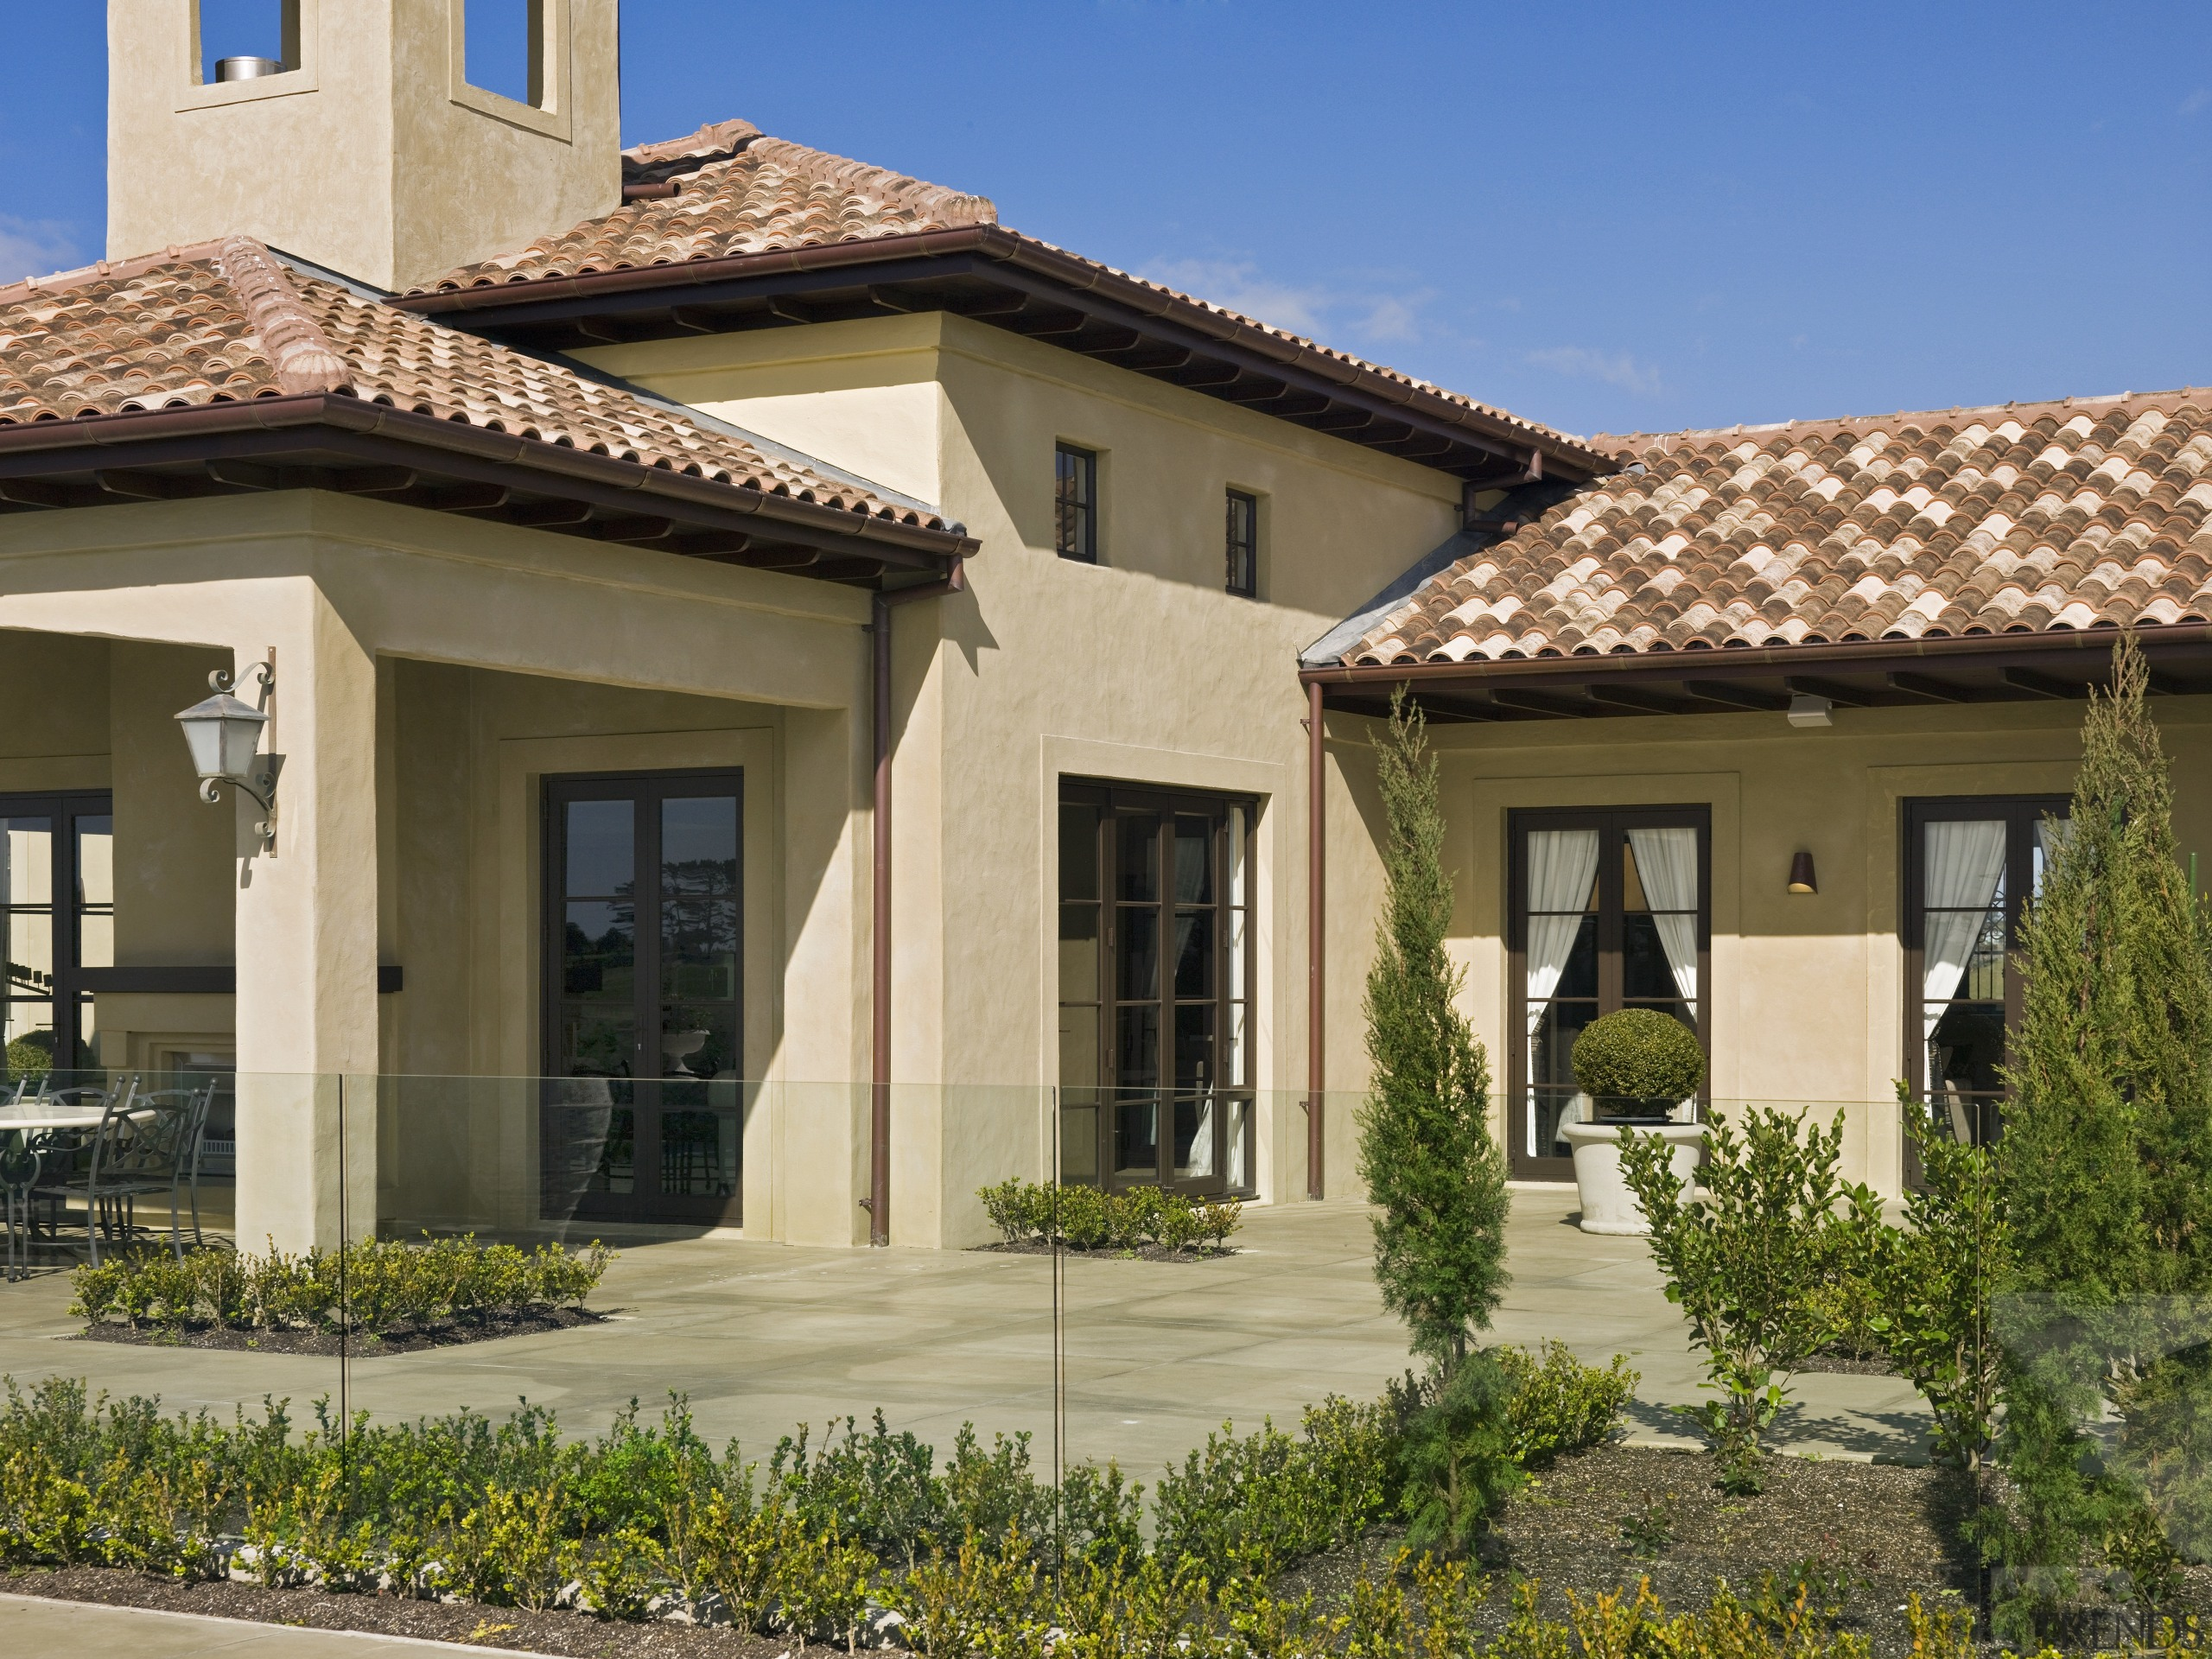 A view of a home designed by Masonry estate, facade, home, house, property, real estate, residential area, roof, villa, window, brown, orange